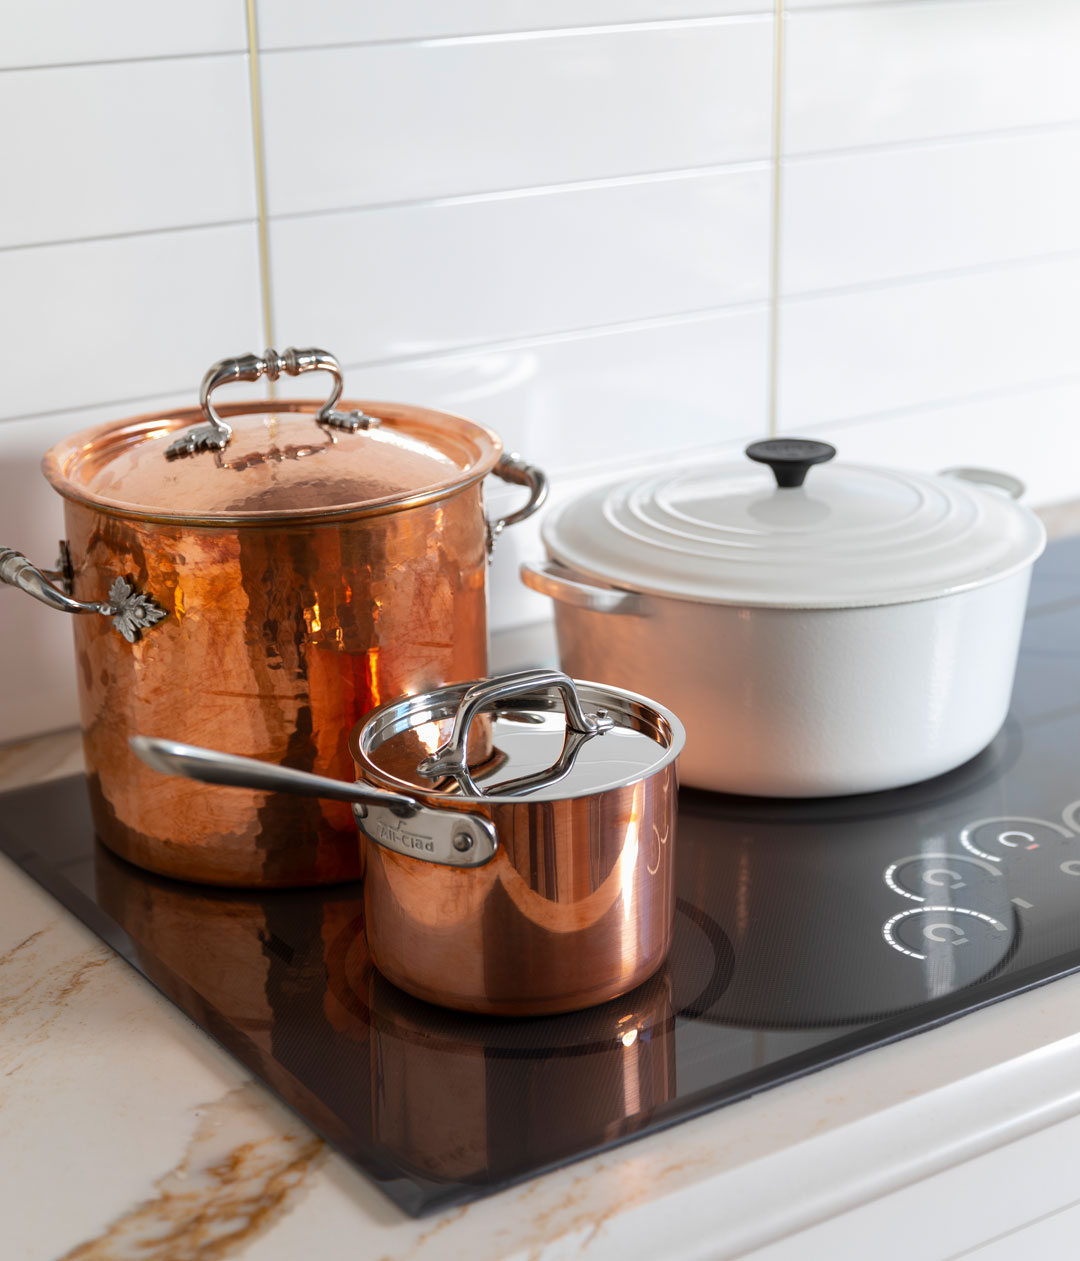 copper and iron pots on induction cootop